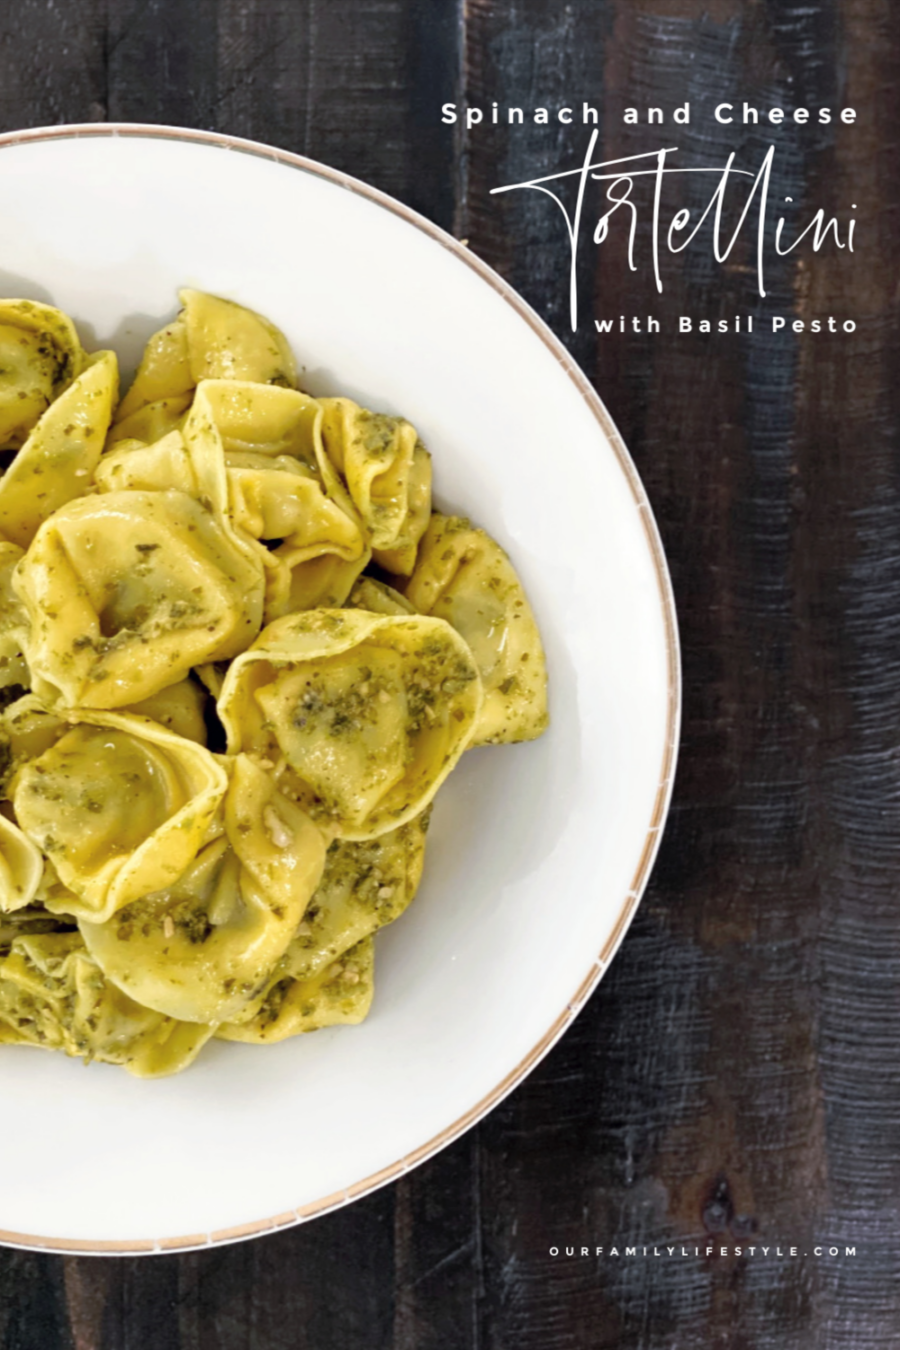 Spinach and Cheese Tortellini with Basil Pesto